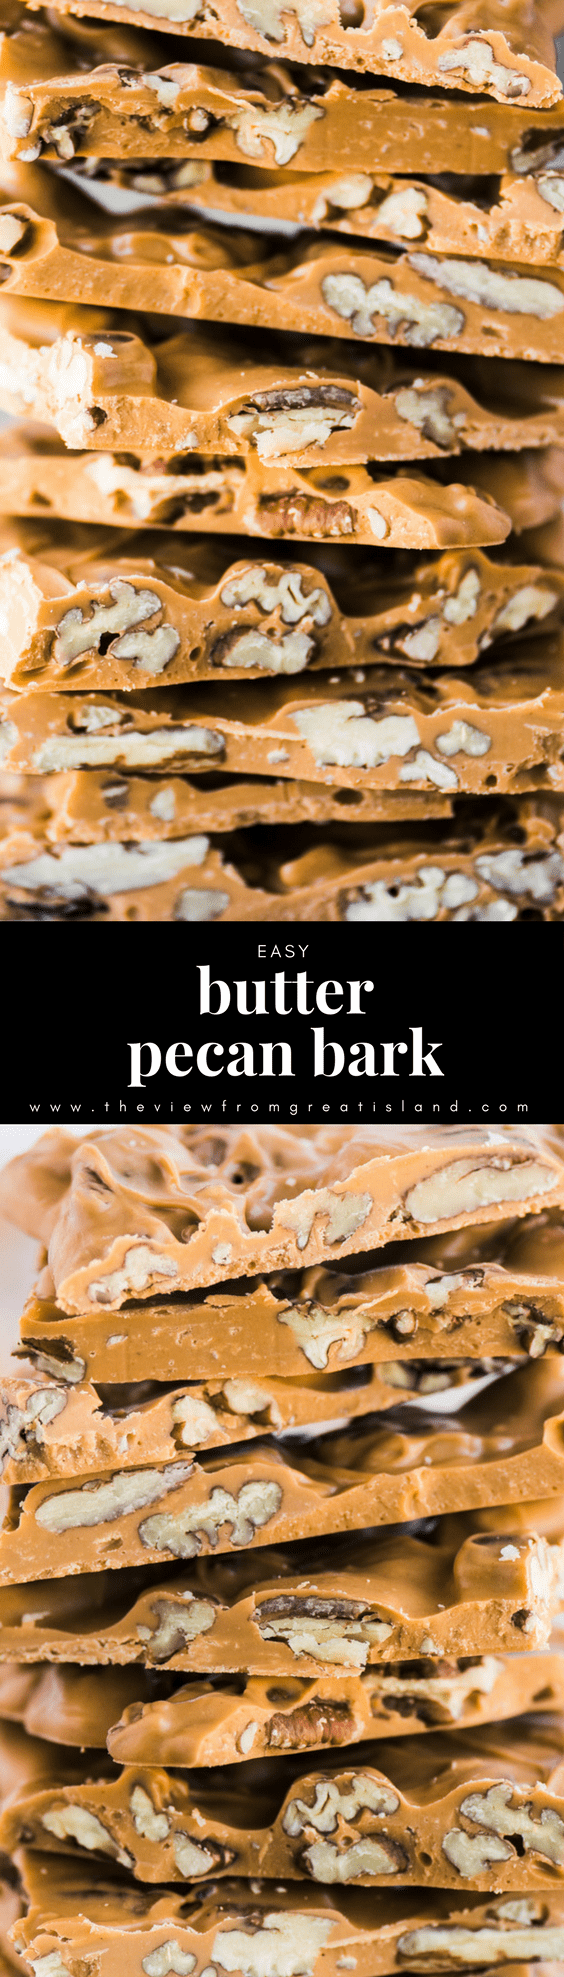 Easy Butter Pecan Bark ~ a pecan studded butterscotch bark that knocks the socks off everybody who tries it. For just 2 ingredients and a few minutes of your time, you owe it to yourself to see what all the fuss is about. #toffee #bark #homemadecandy #butterpecan #foodgift #Christmascandy #Christmasdessert #pecanbark #chocolate #chocolatebark #butterscotchbark #easycandy #easybark